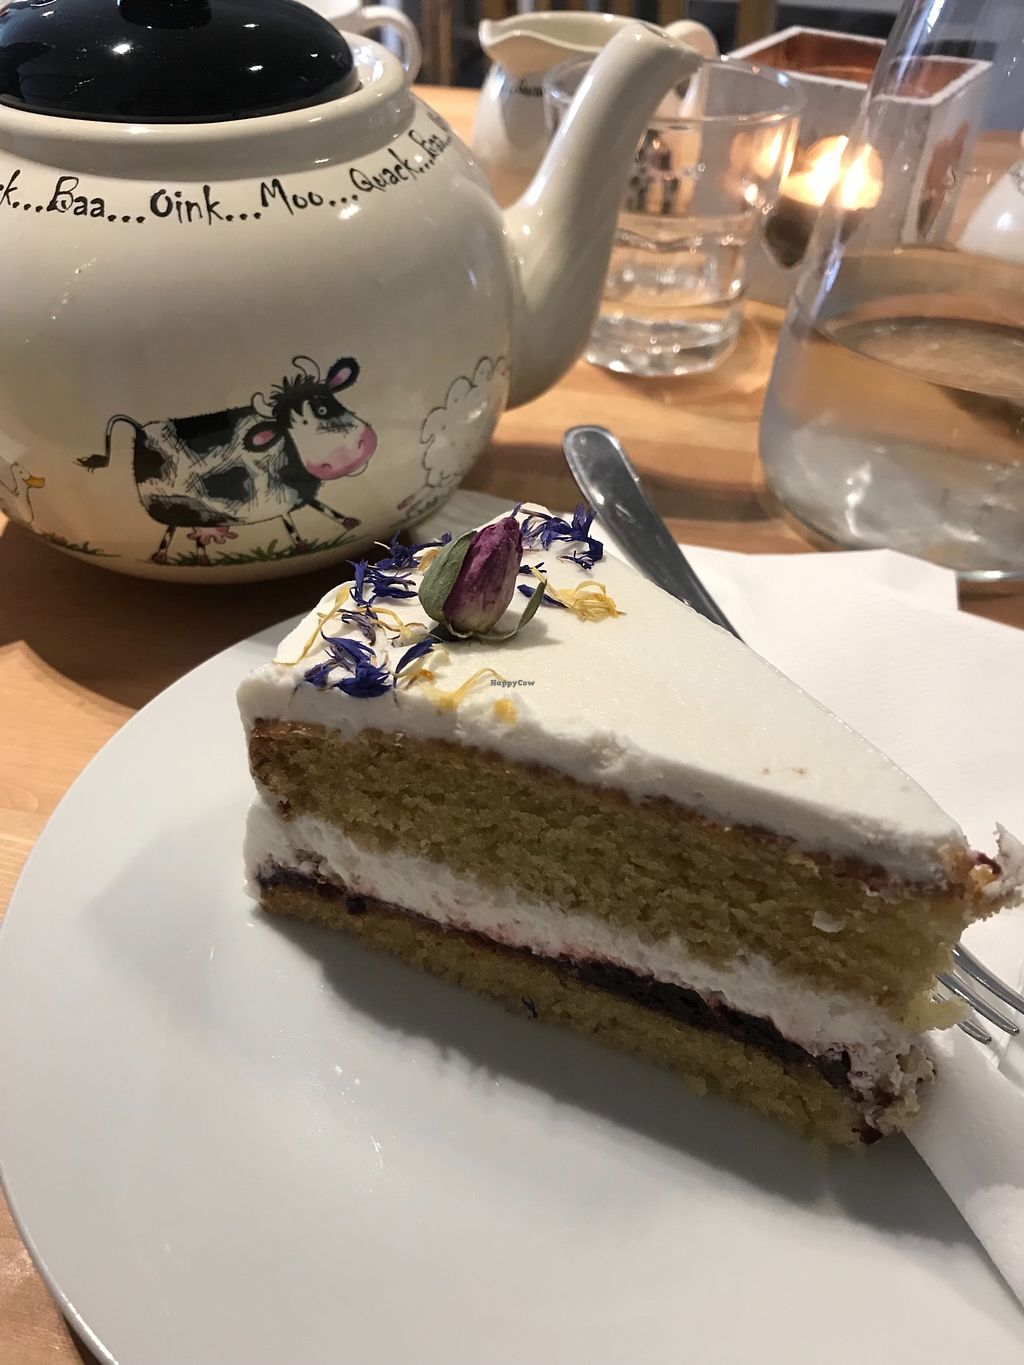 """Photo of Holy Cow  by <a href=""""/members/profile/AshleighC"""">AshleighC</a> <br/>Victorian sponge cake <br/> March 30, 2018  - <a href='/contact/abuse/image/83562/378428'>Report</a>"""